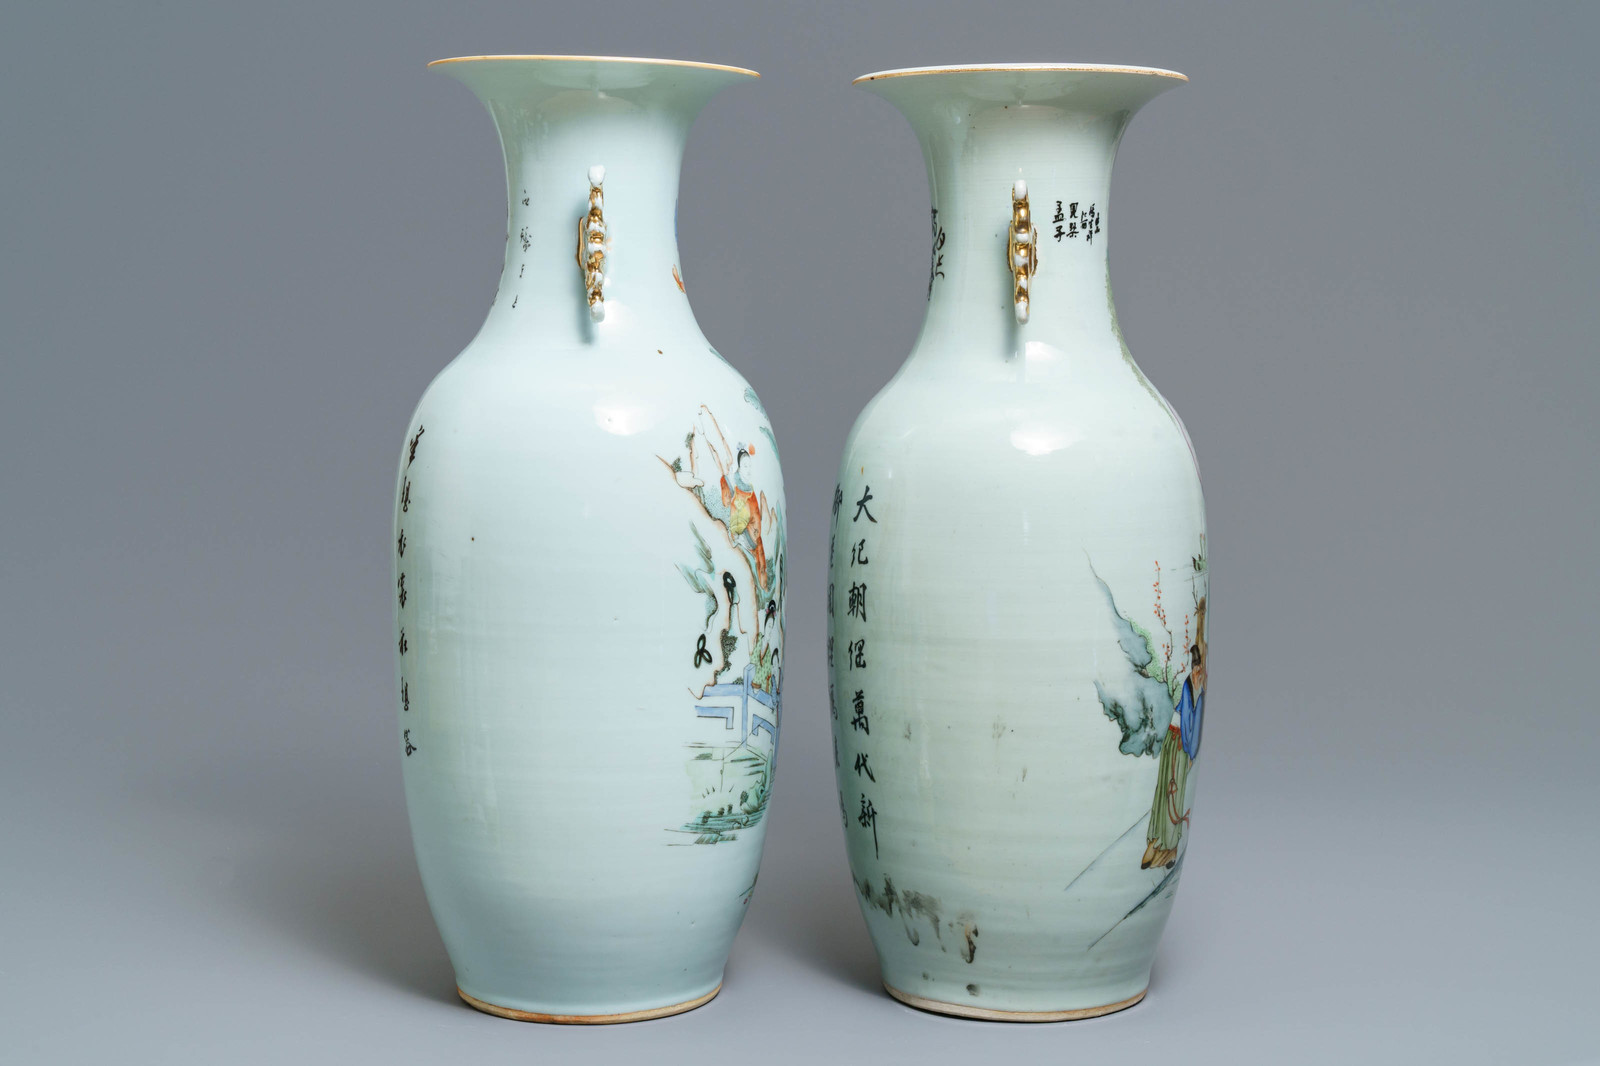 Lot 35 - Two Chinese famille rose vases with figures in a garden, 19/20th C.